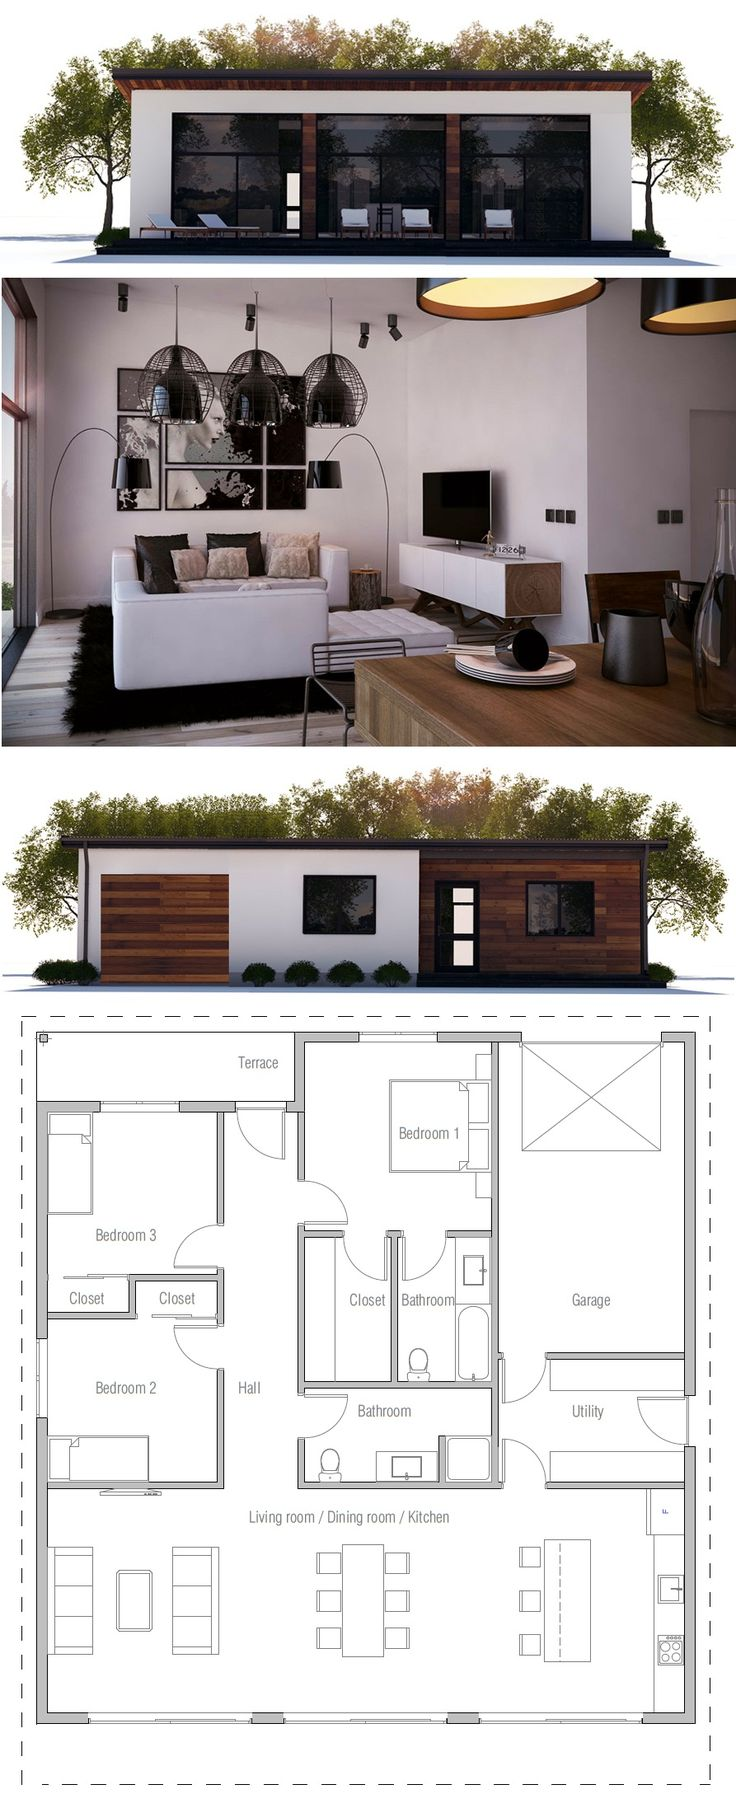 Fantastic 17 Best Ideas About Small House Plans On Pinterest Small House Largest Home Design Picture Inspirations Pitcheantrous